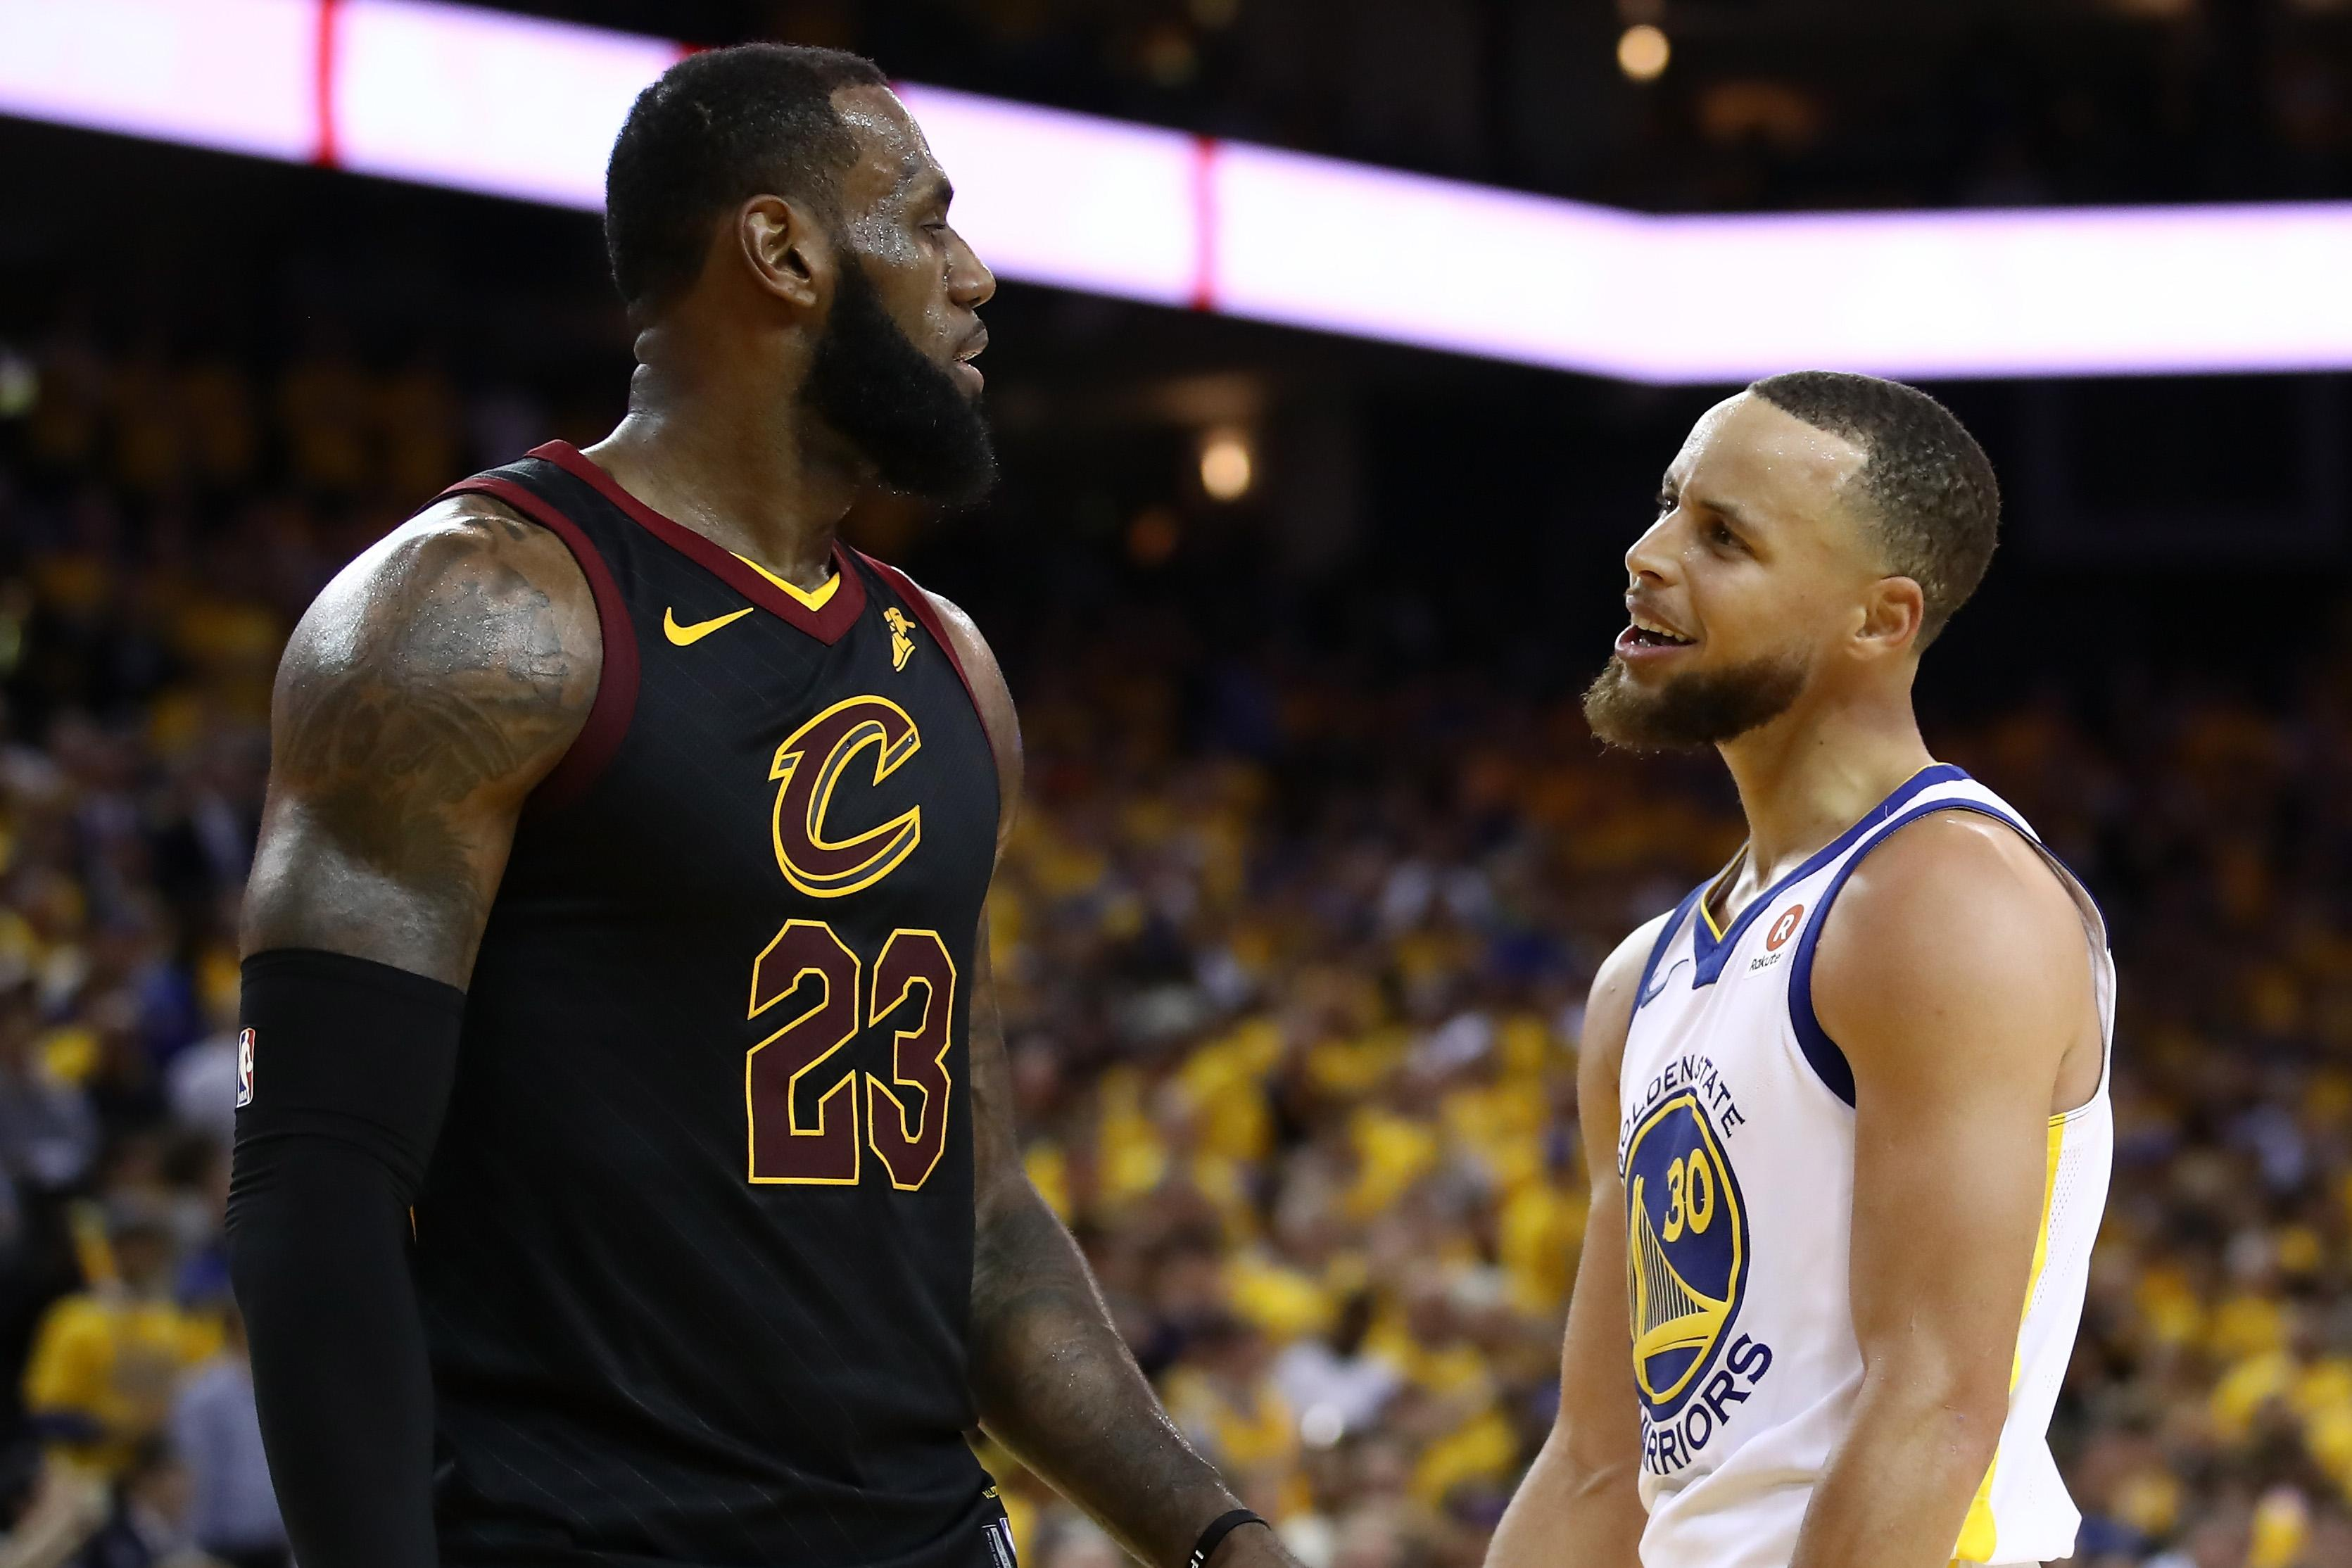 NBA Finals: Curry Dismisses Chatter With LeBron James As 'Bunch Of Nonsense'